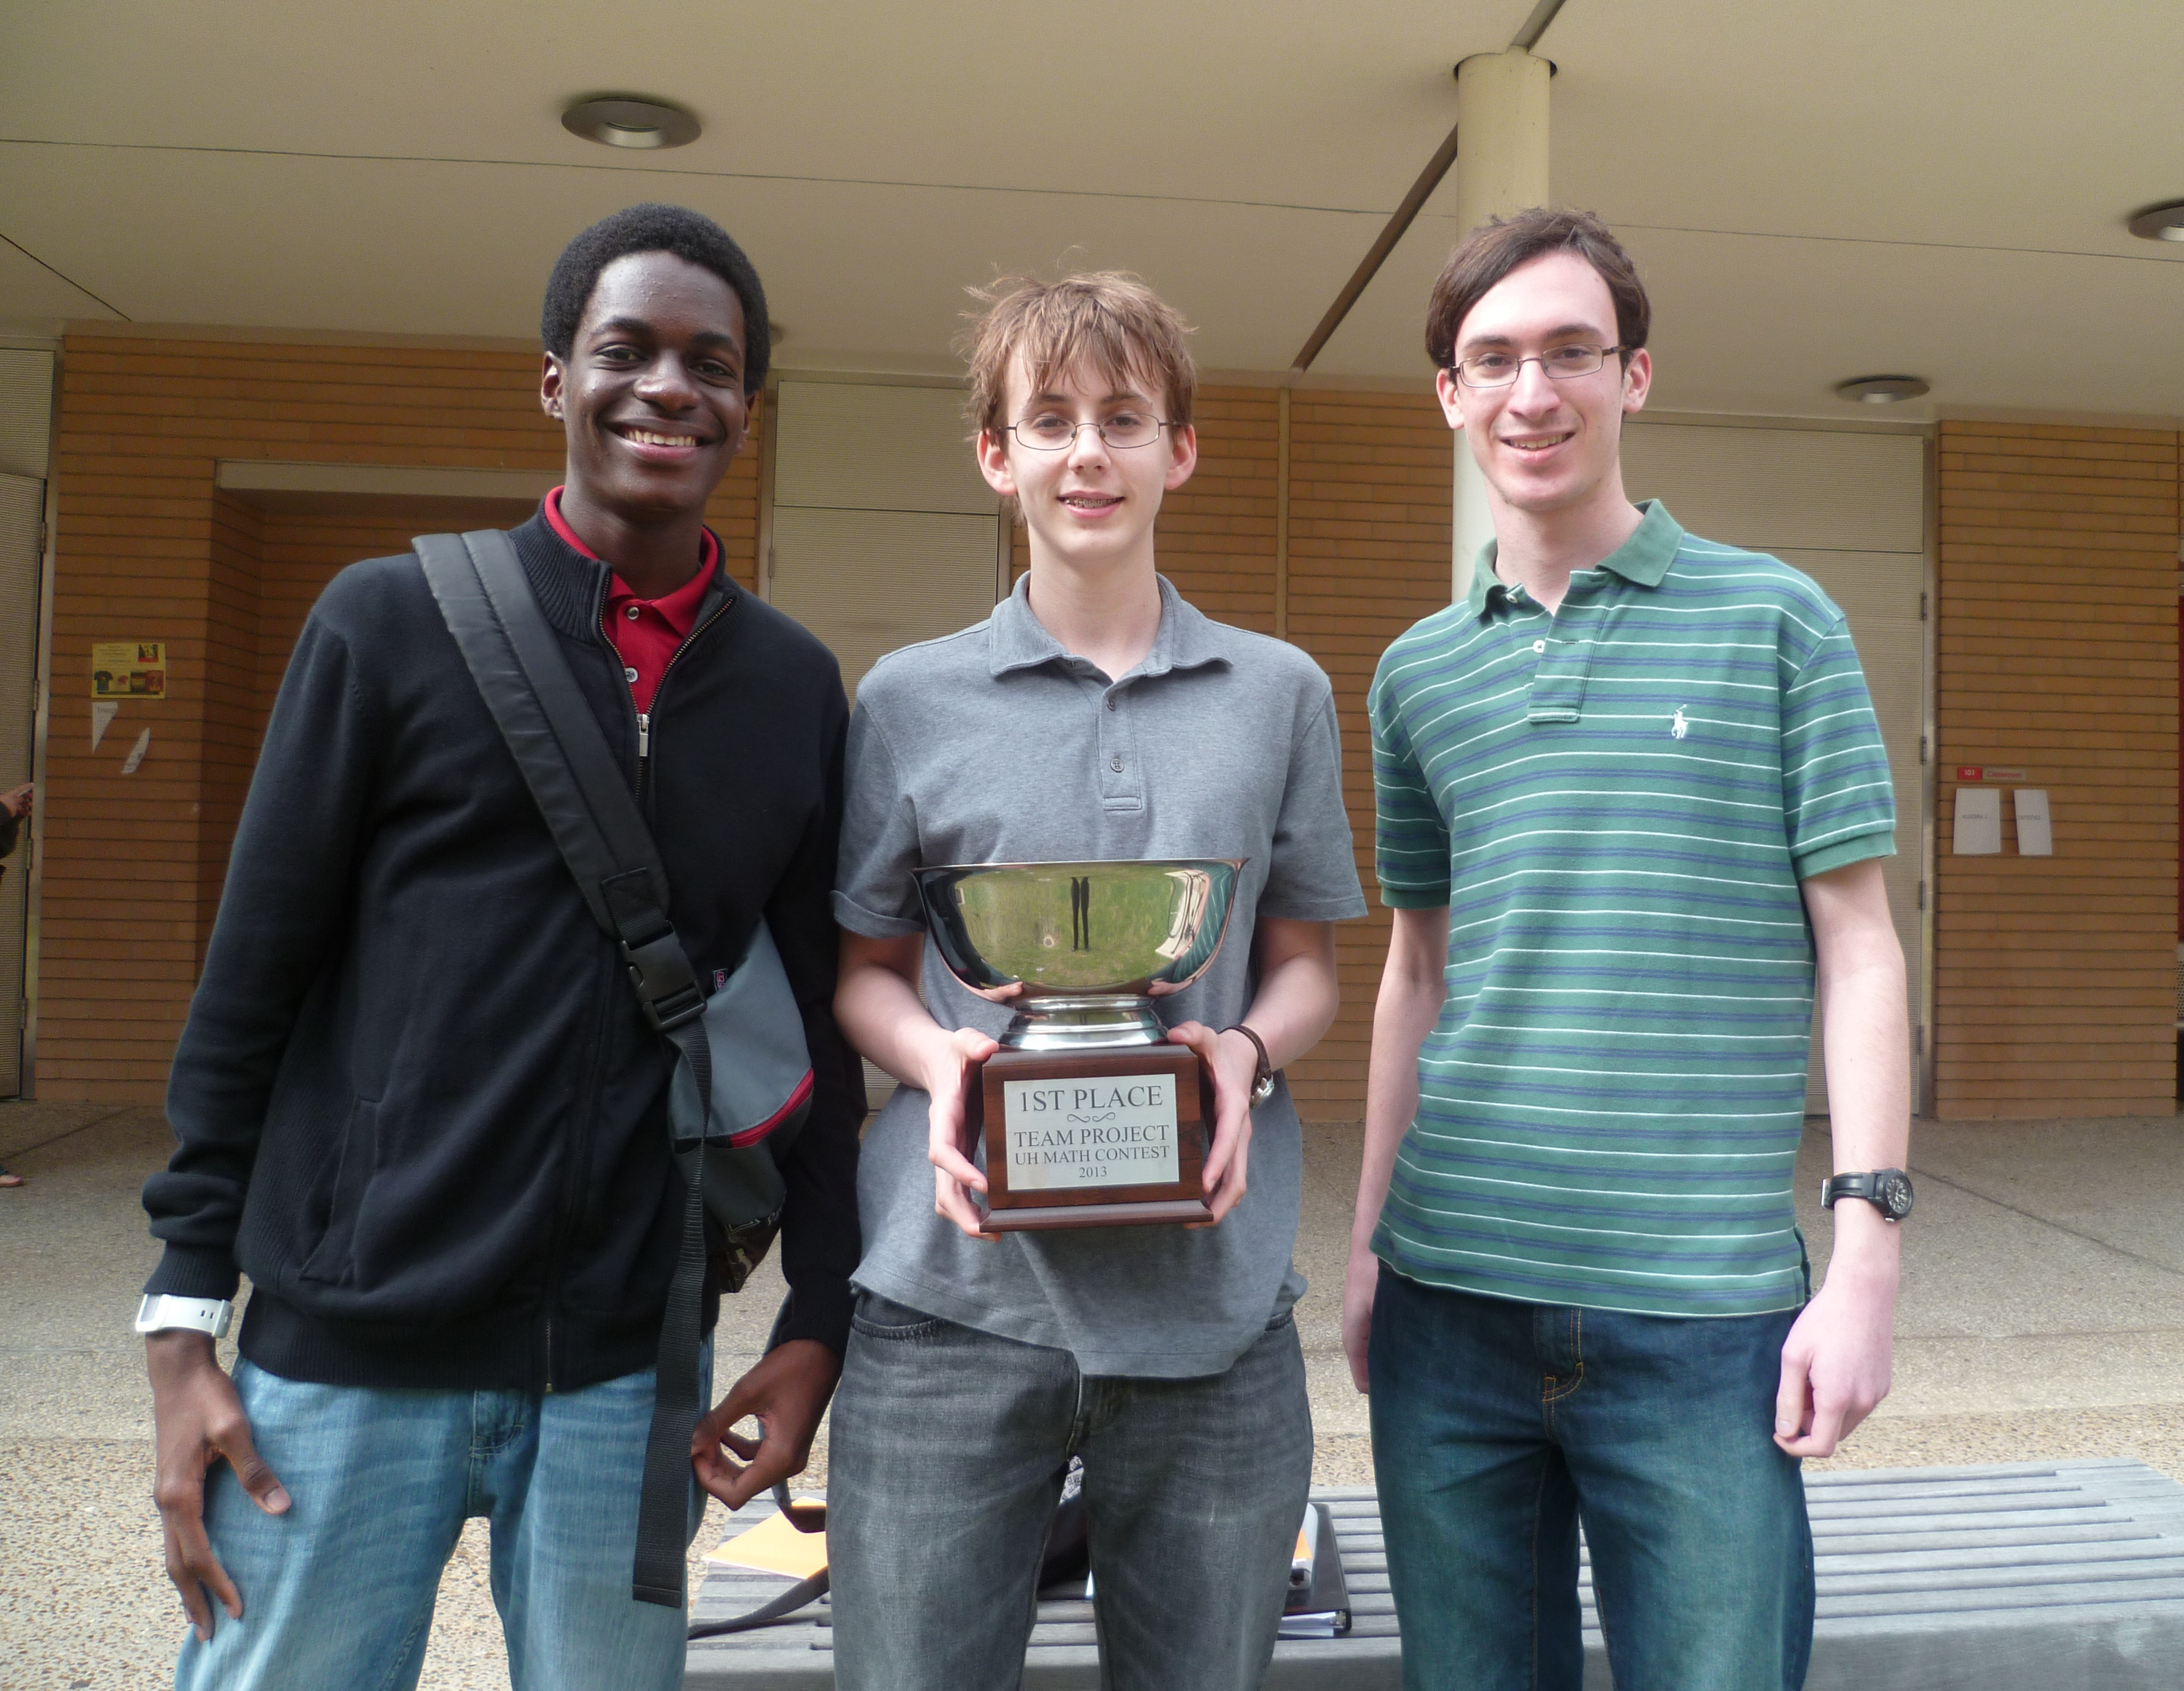 Winning the 2013 University of Houston Math Contest